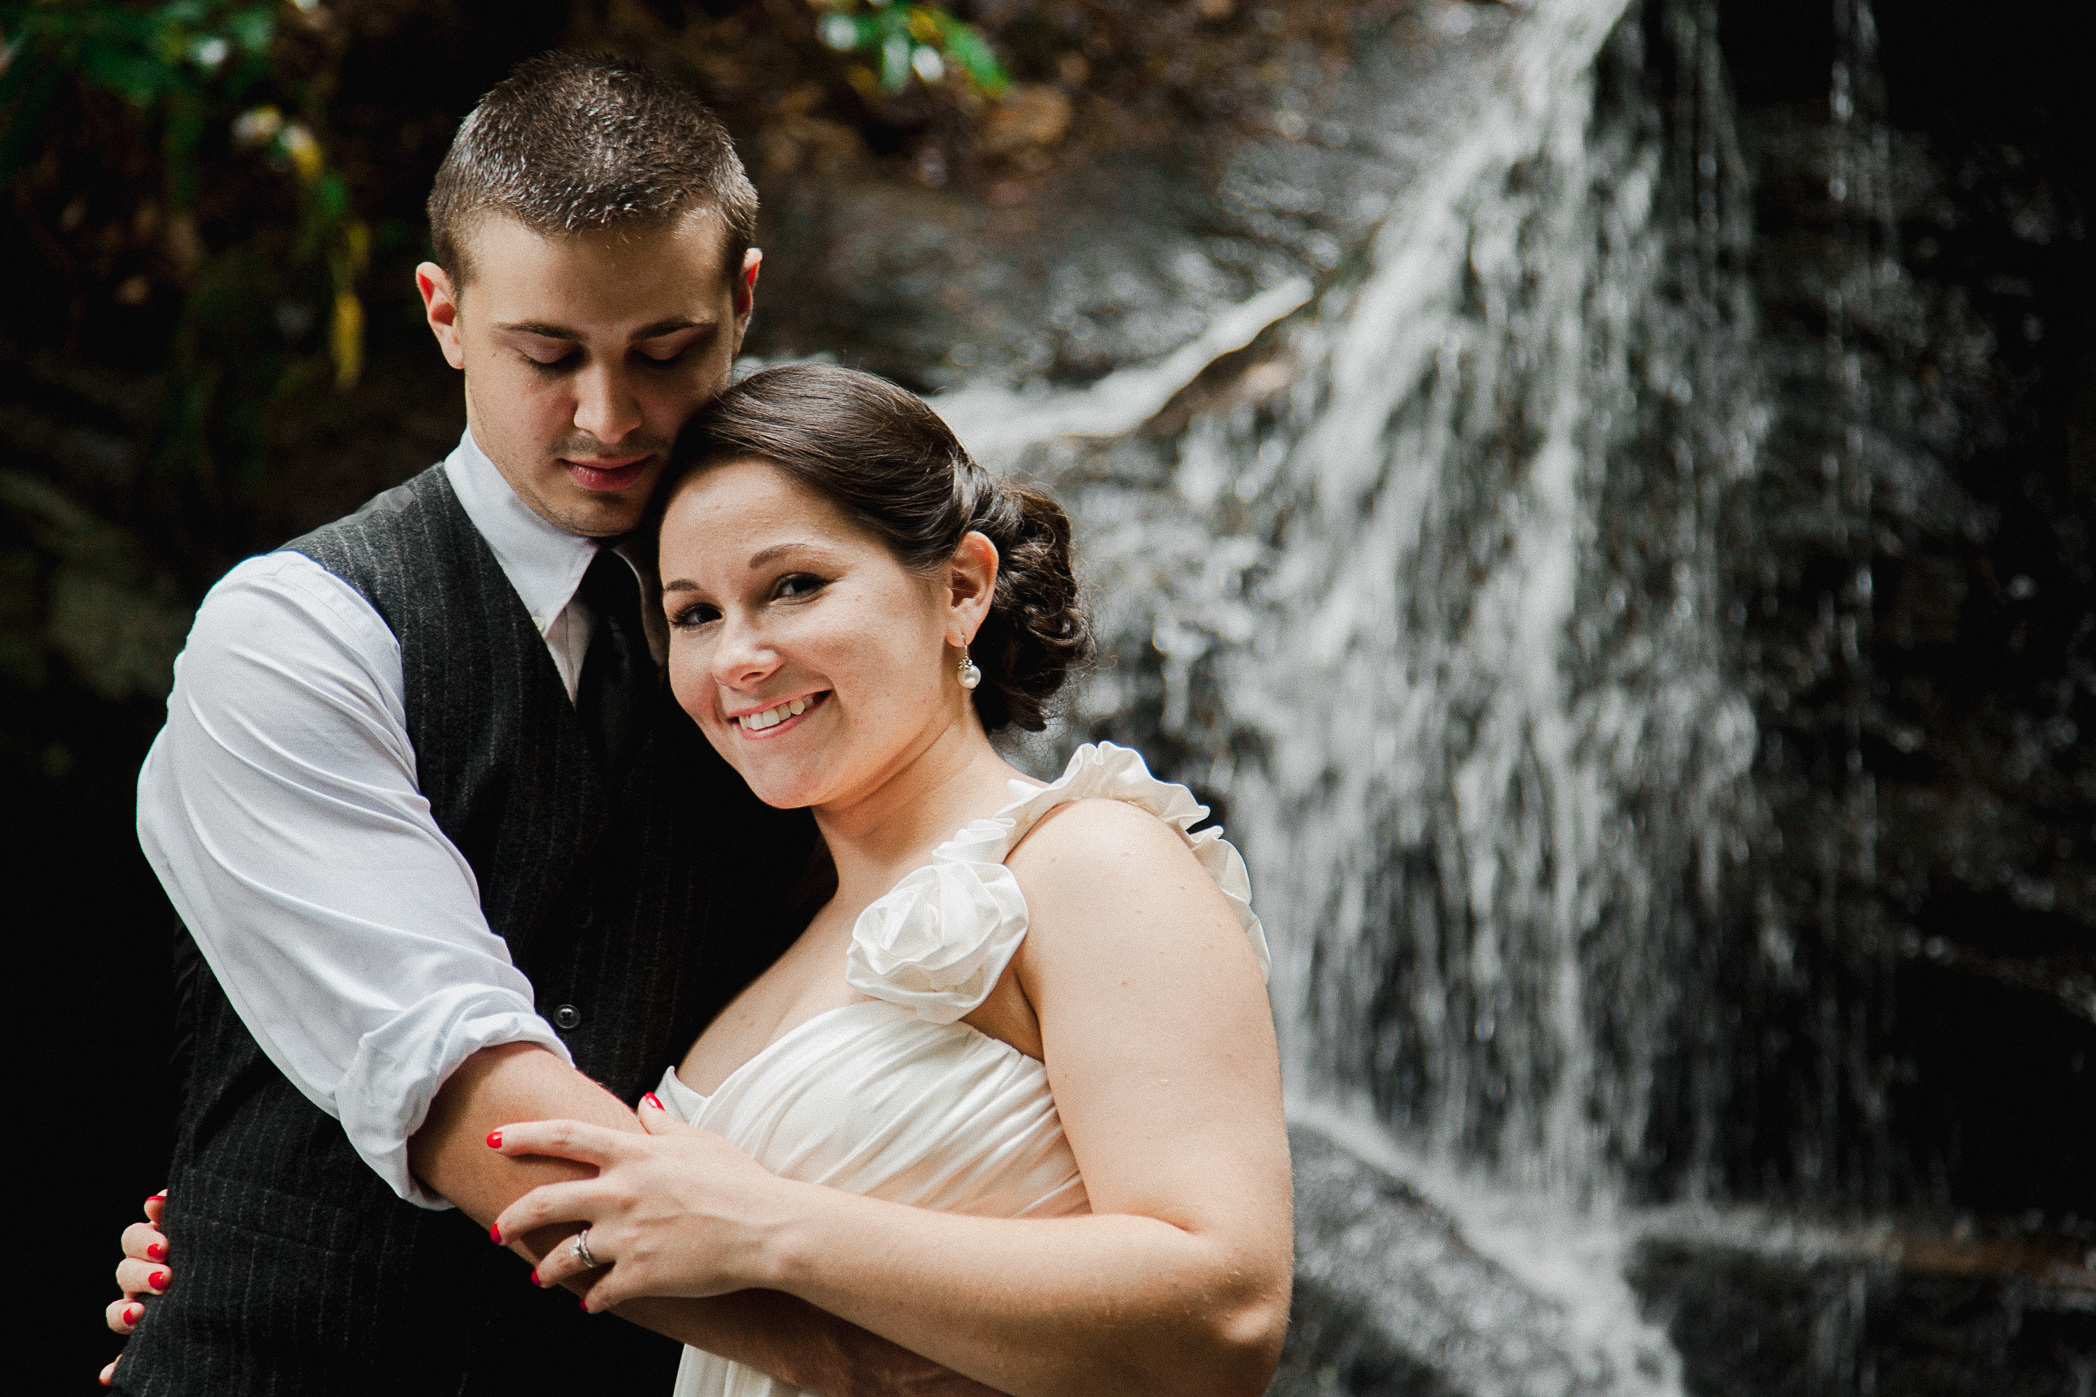 wildcat_falls_wedding (33 of 36).jpg